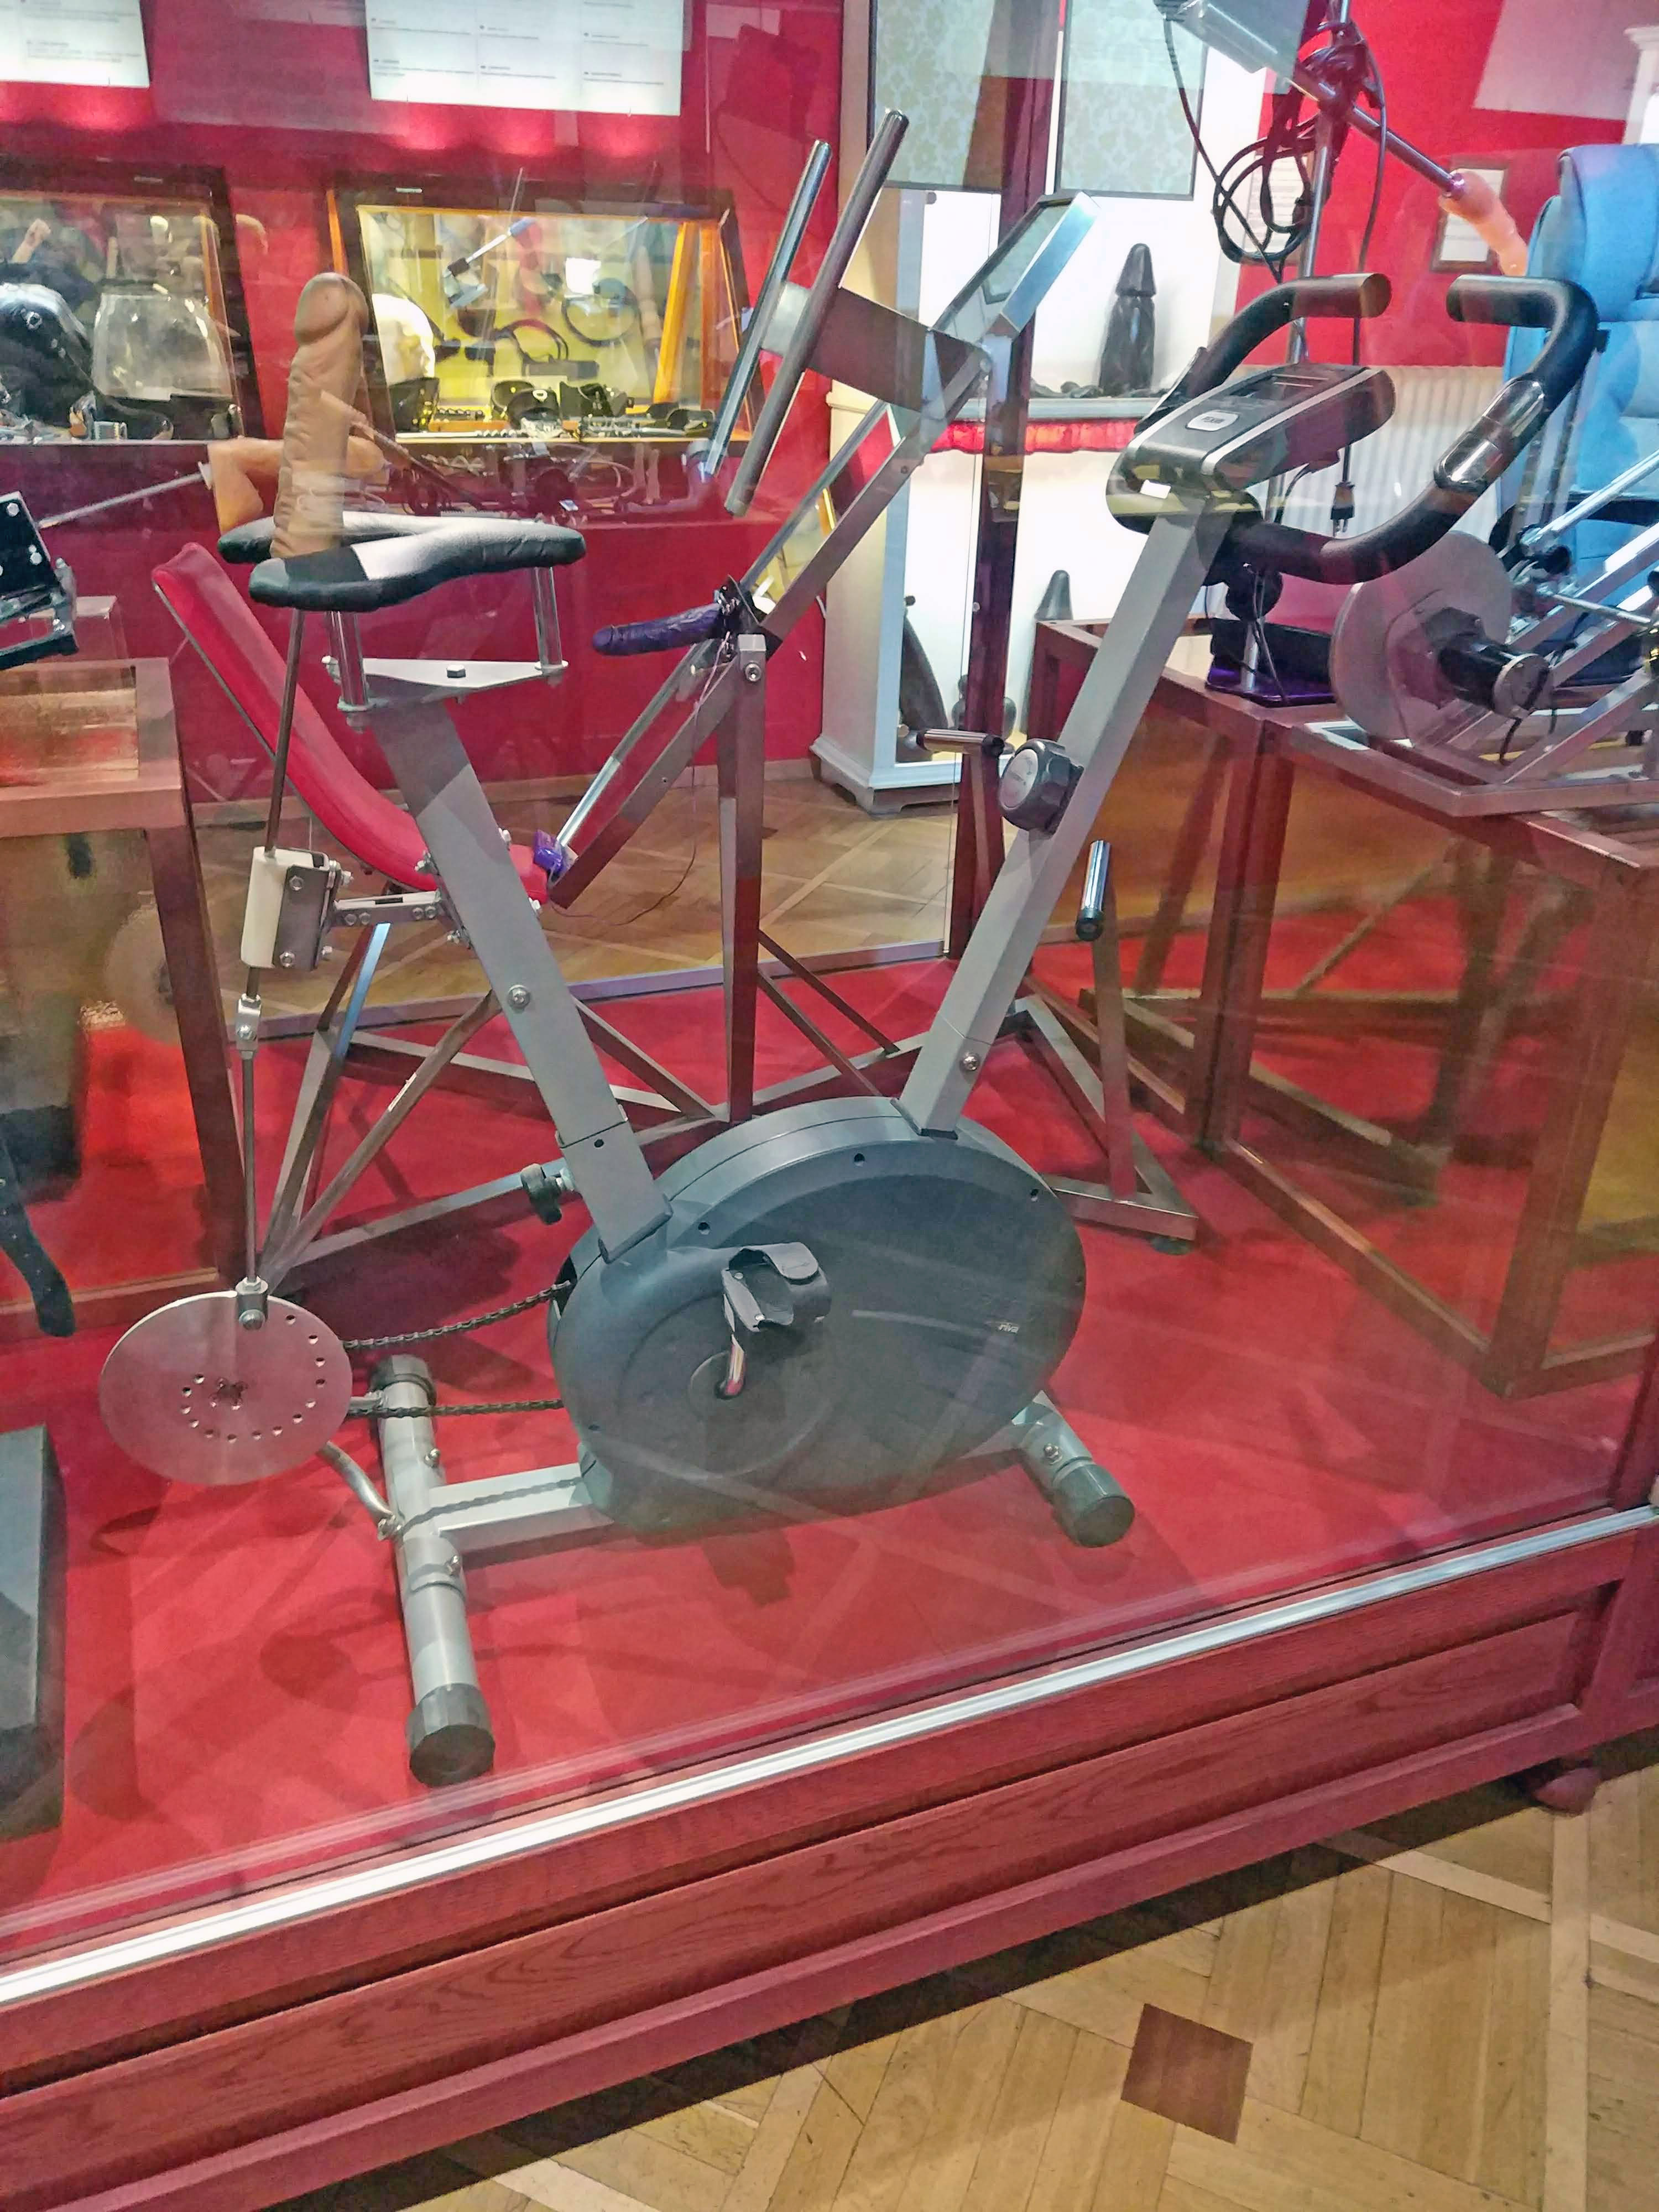 Sex Machines Museum Prague - Exercise bike with a dildo.jpg English: Exercise bike with a dildo. In Sex Machines Museum Prague Date 16 July 2018, 17:44:49